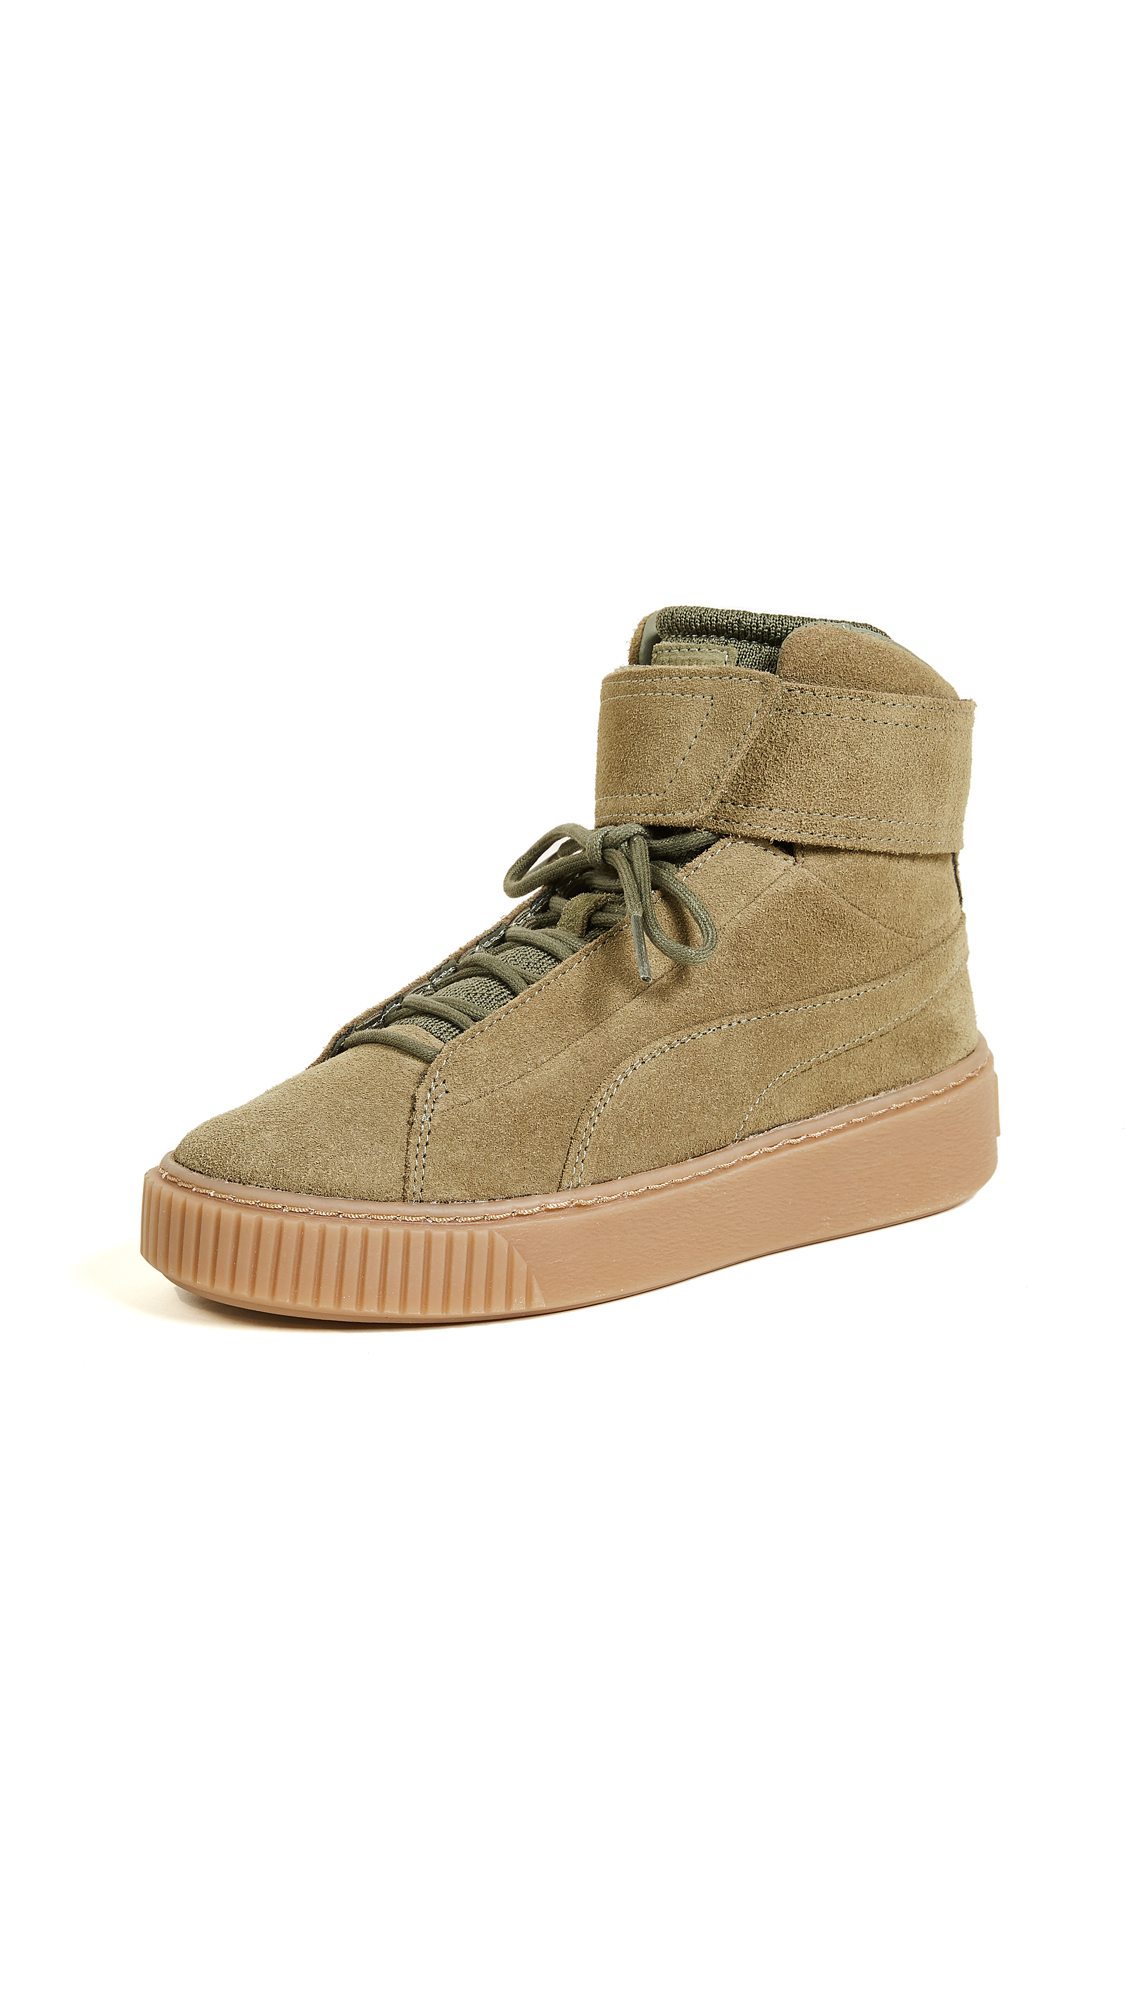 PUMA Platform Mid OW Sneakers - Olive Night/Olive Night